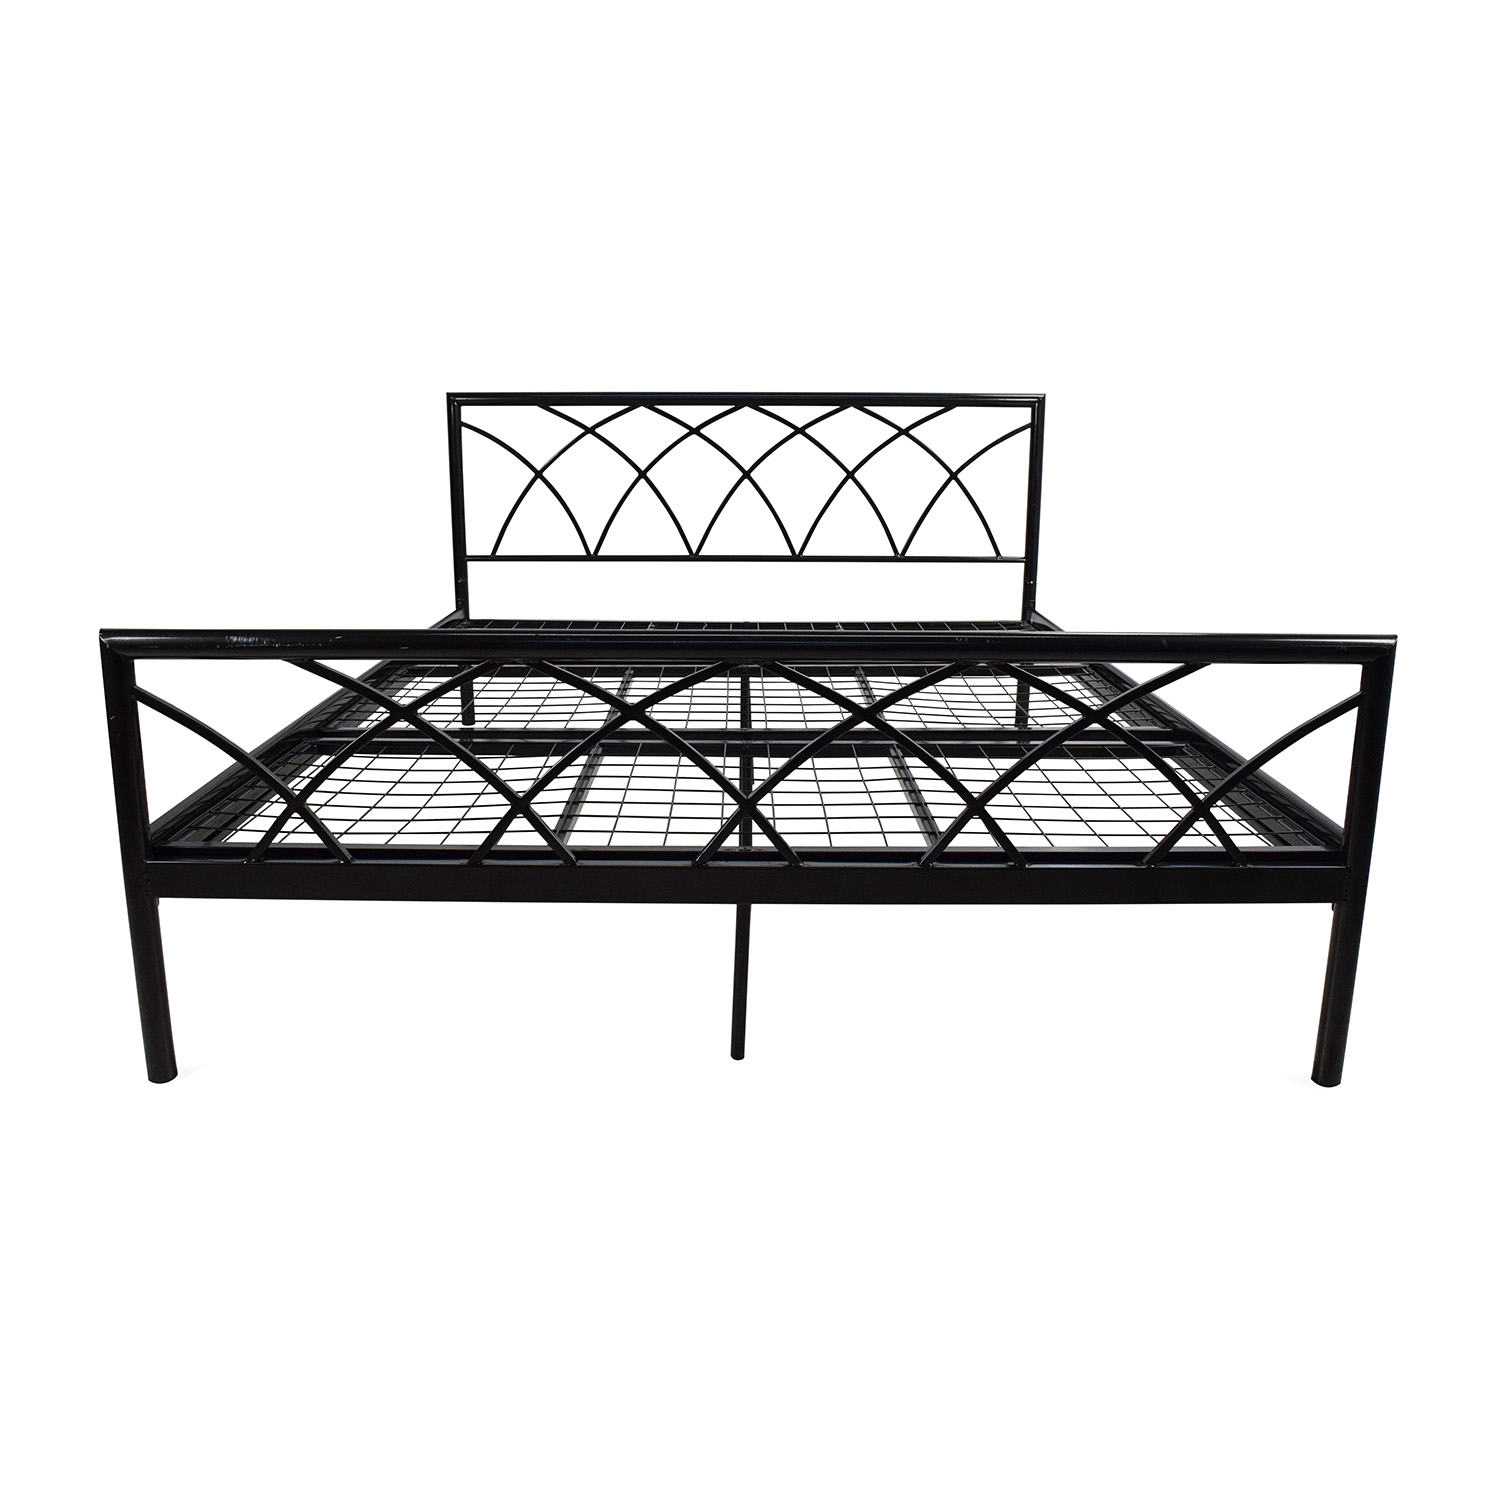 75 Off Overstock Queen Size Metal Bed Frame Beds